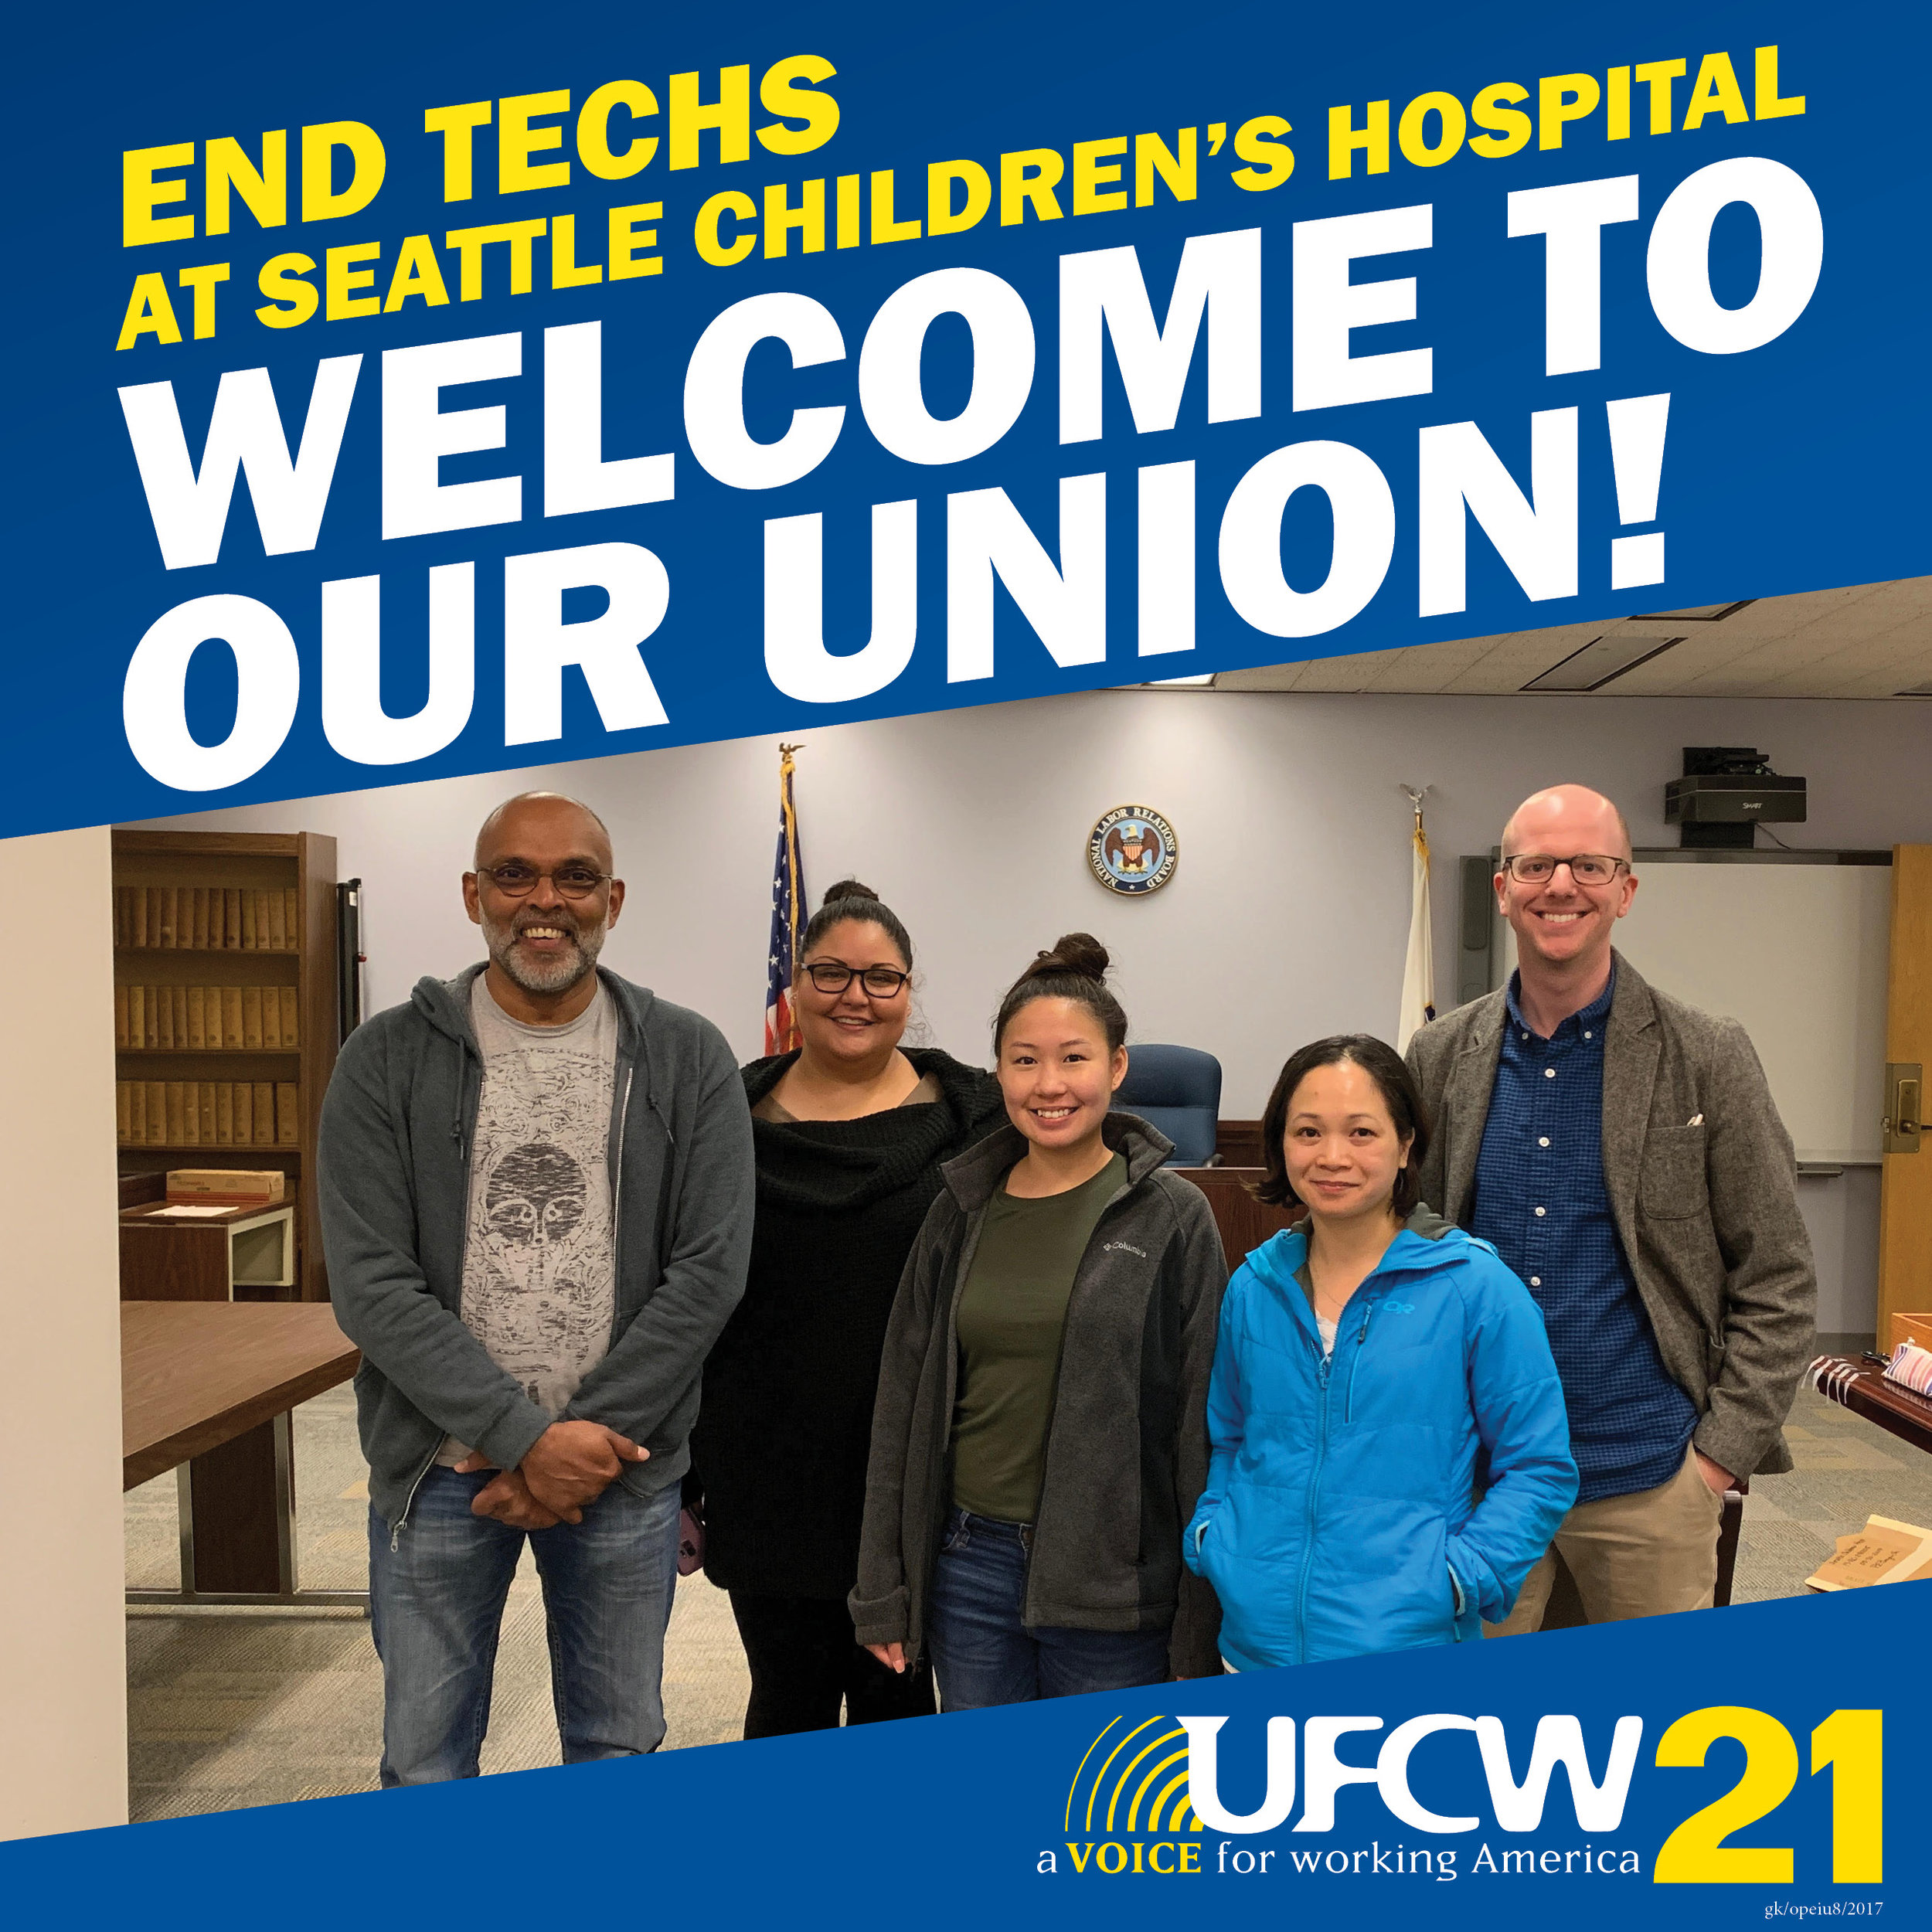 Welcome to our union social media card END Techs at Seattle Childrens Hospital .jpg